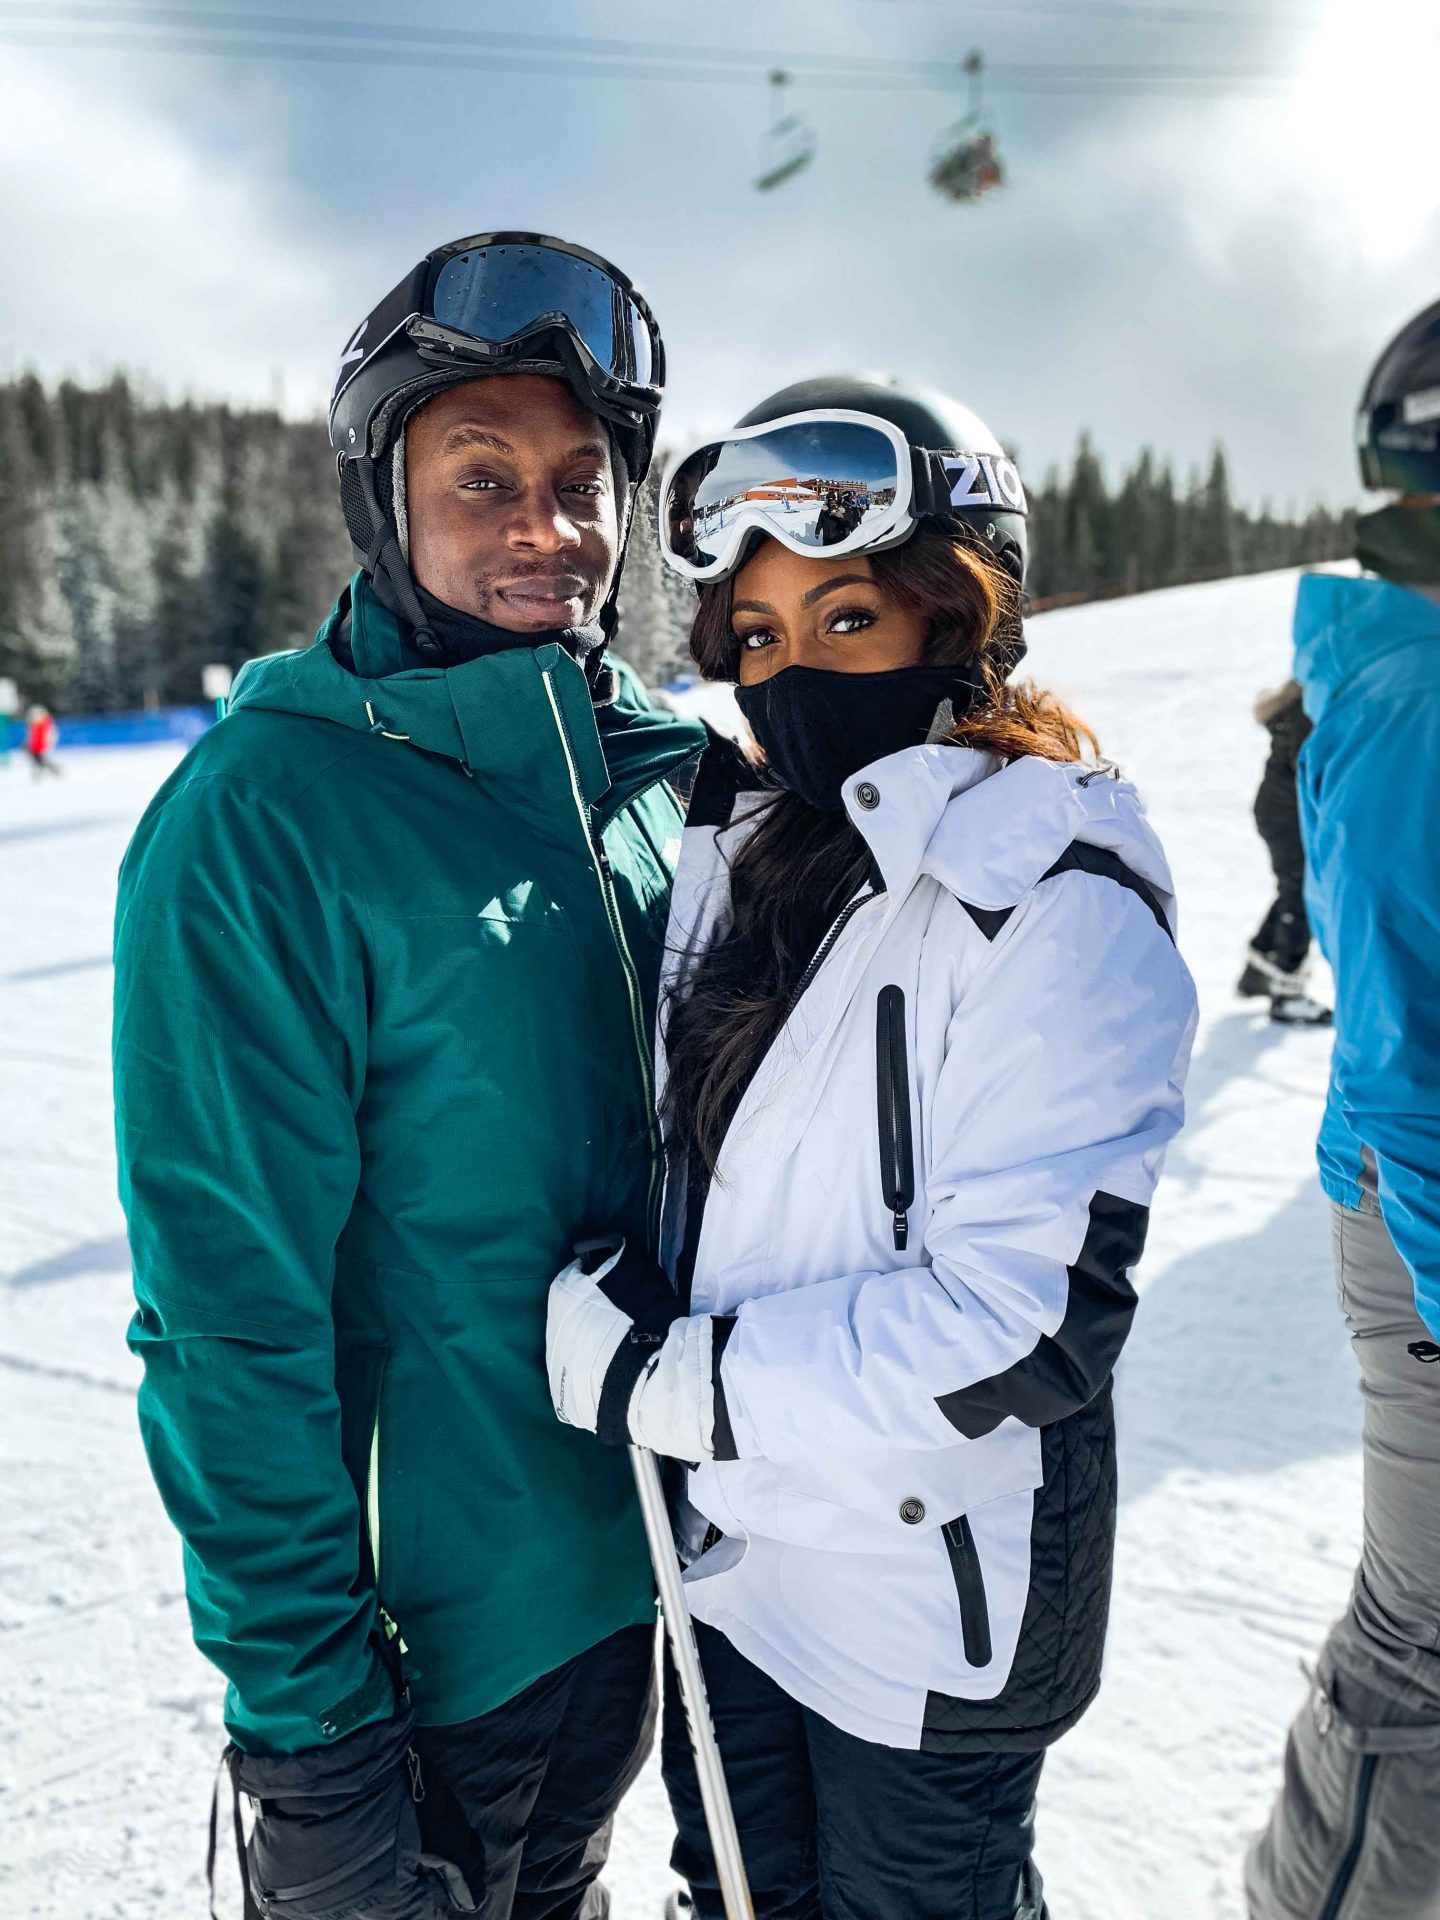 All You Need To Plan Your Trip To Breckenridge Colorado   Ski Trip Packing Guide